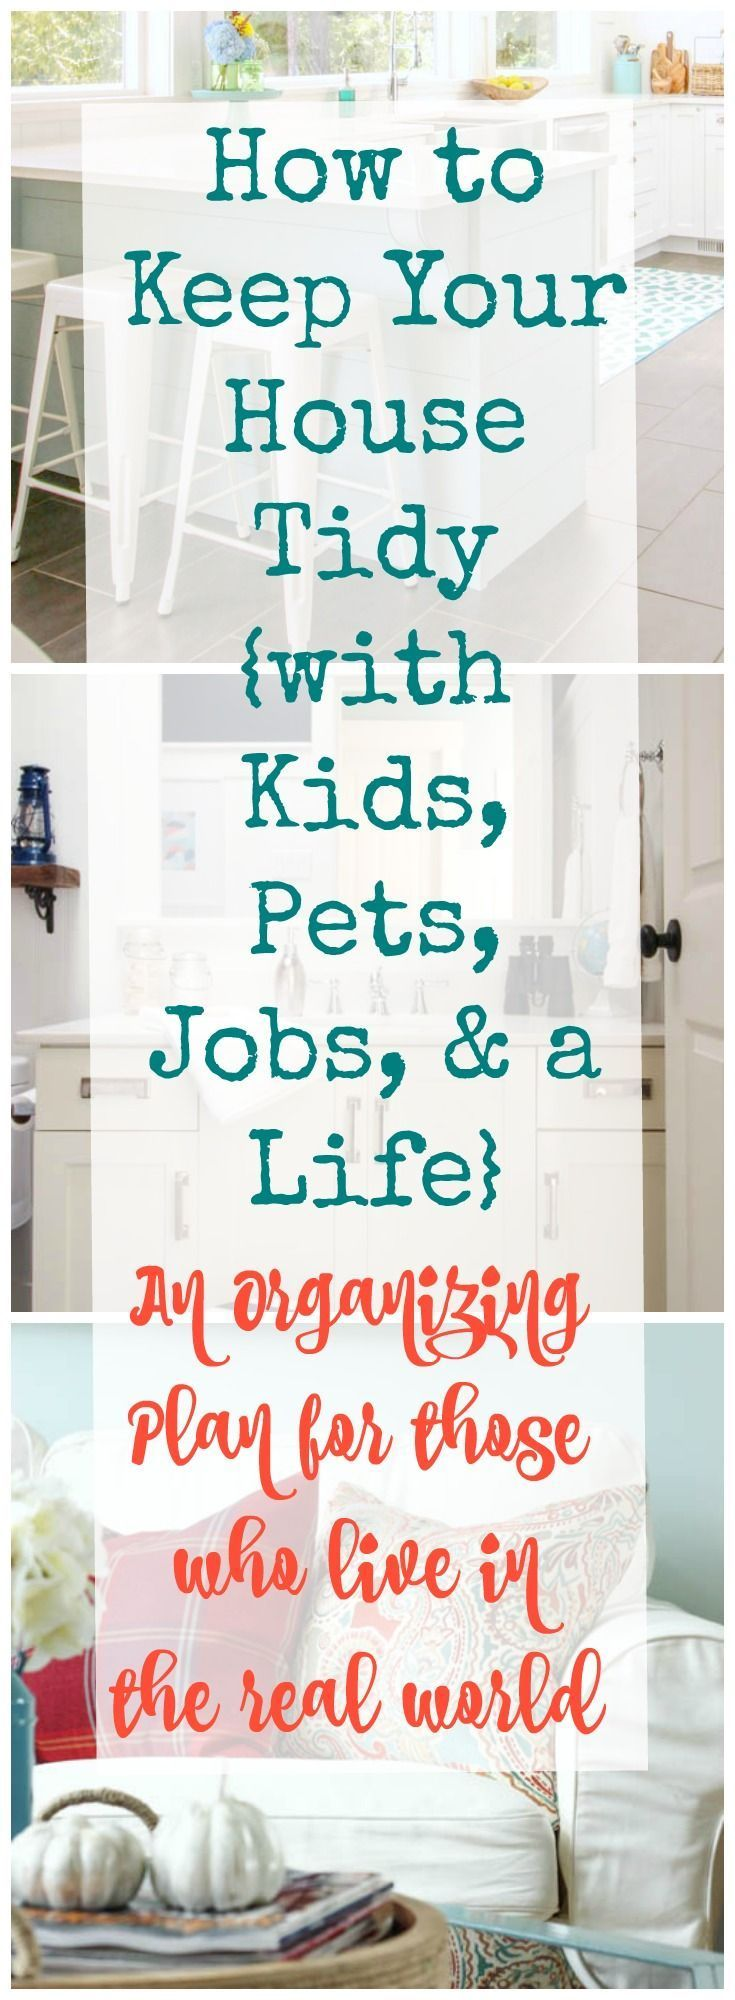 Storage amp organisation home office products housekeeping flooring baby - Organizing How To Organize Best Organizing Tips Easy Organizing Tips